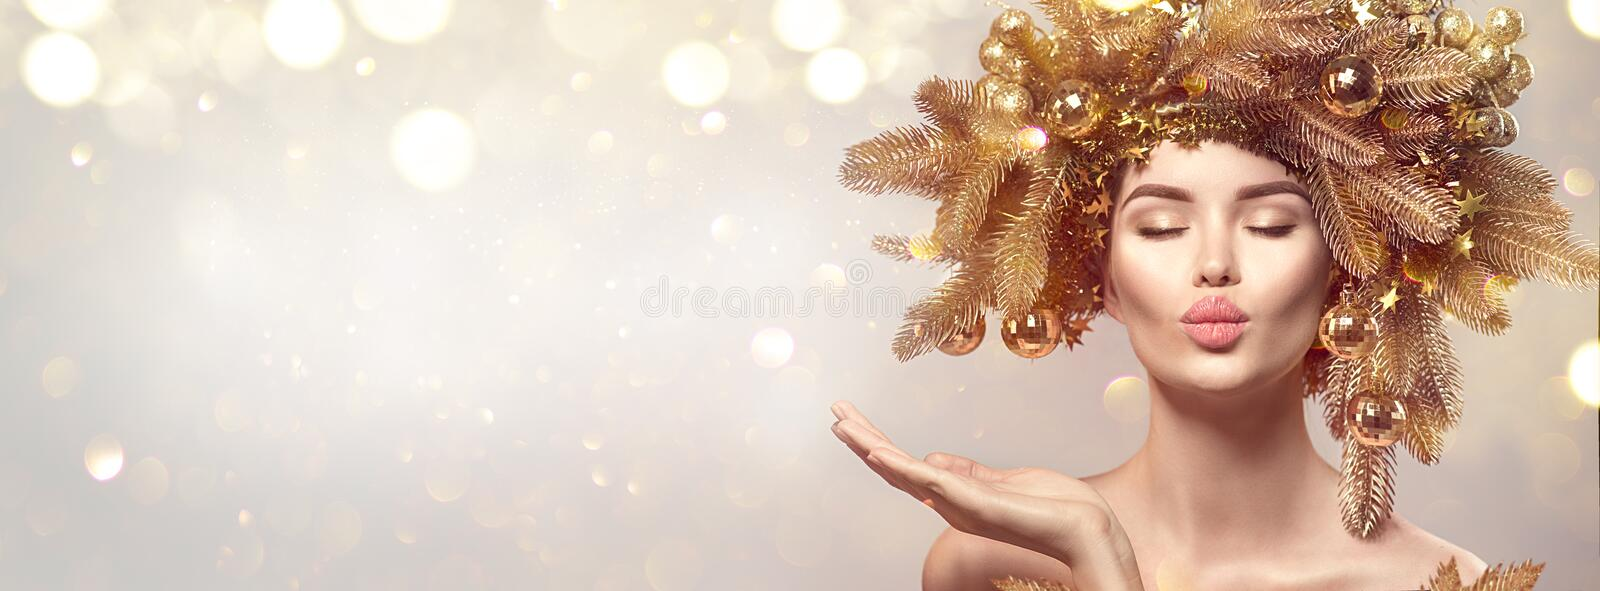 Christmas Woman with golden spruce tree wreath hairstyle on blurred pastel background. Beautiful Xmas model girl royalty free stock photography